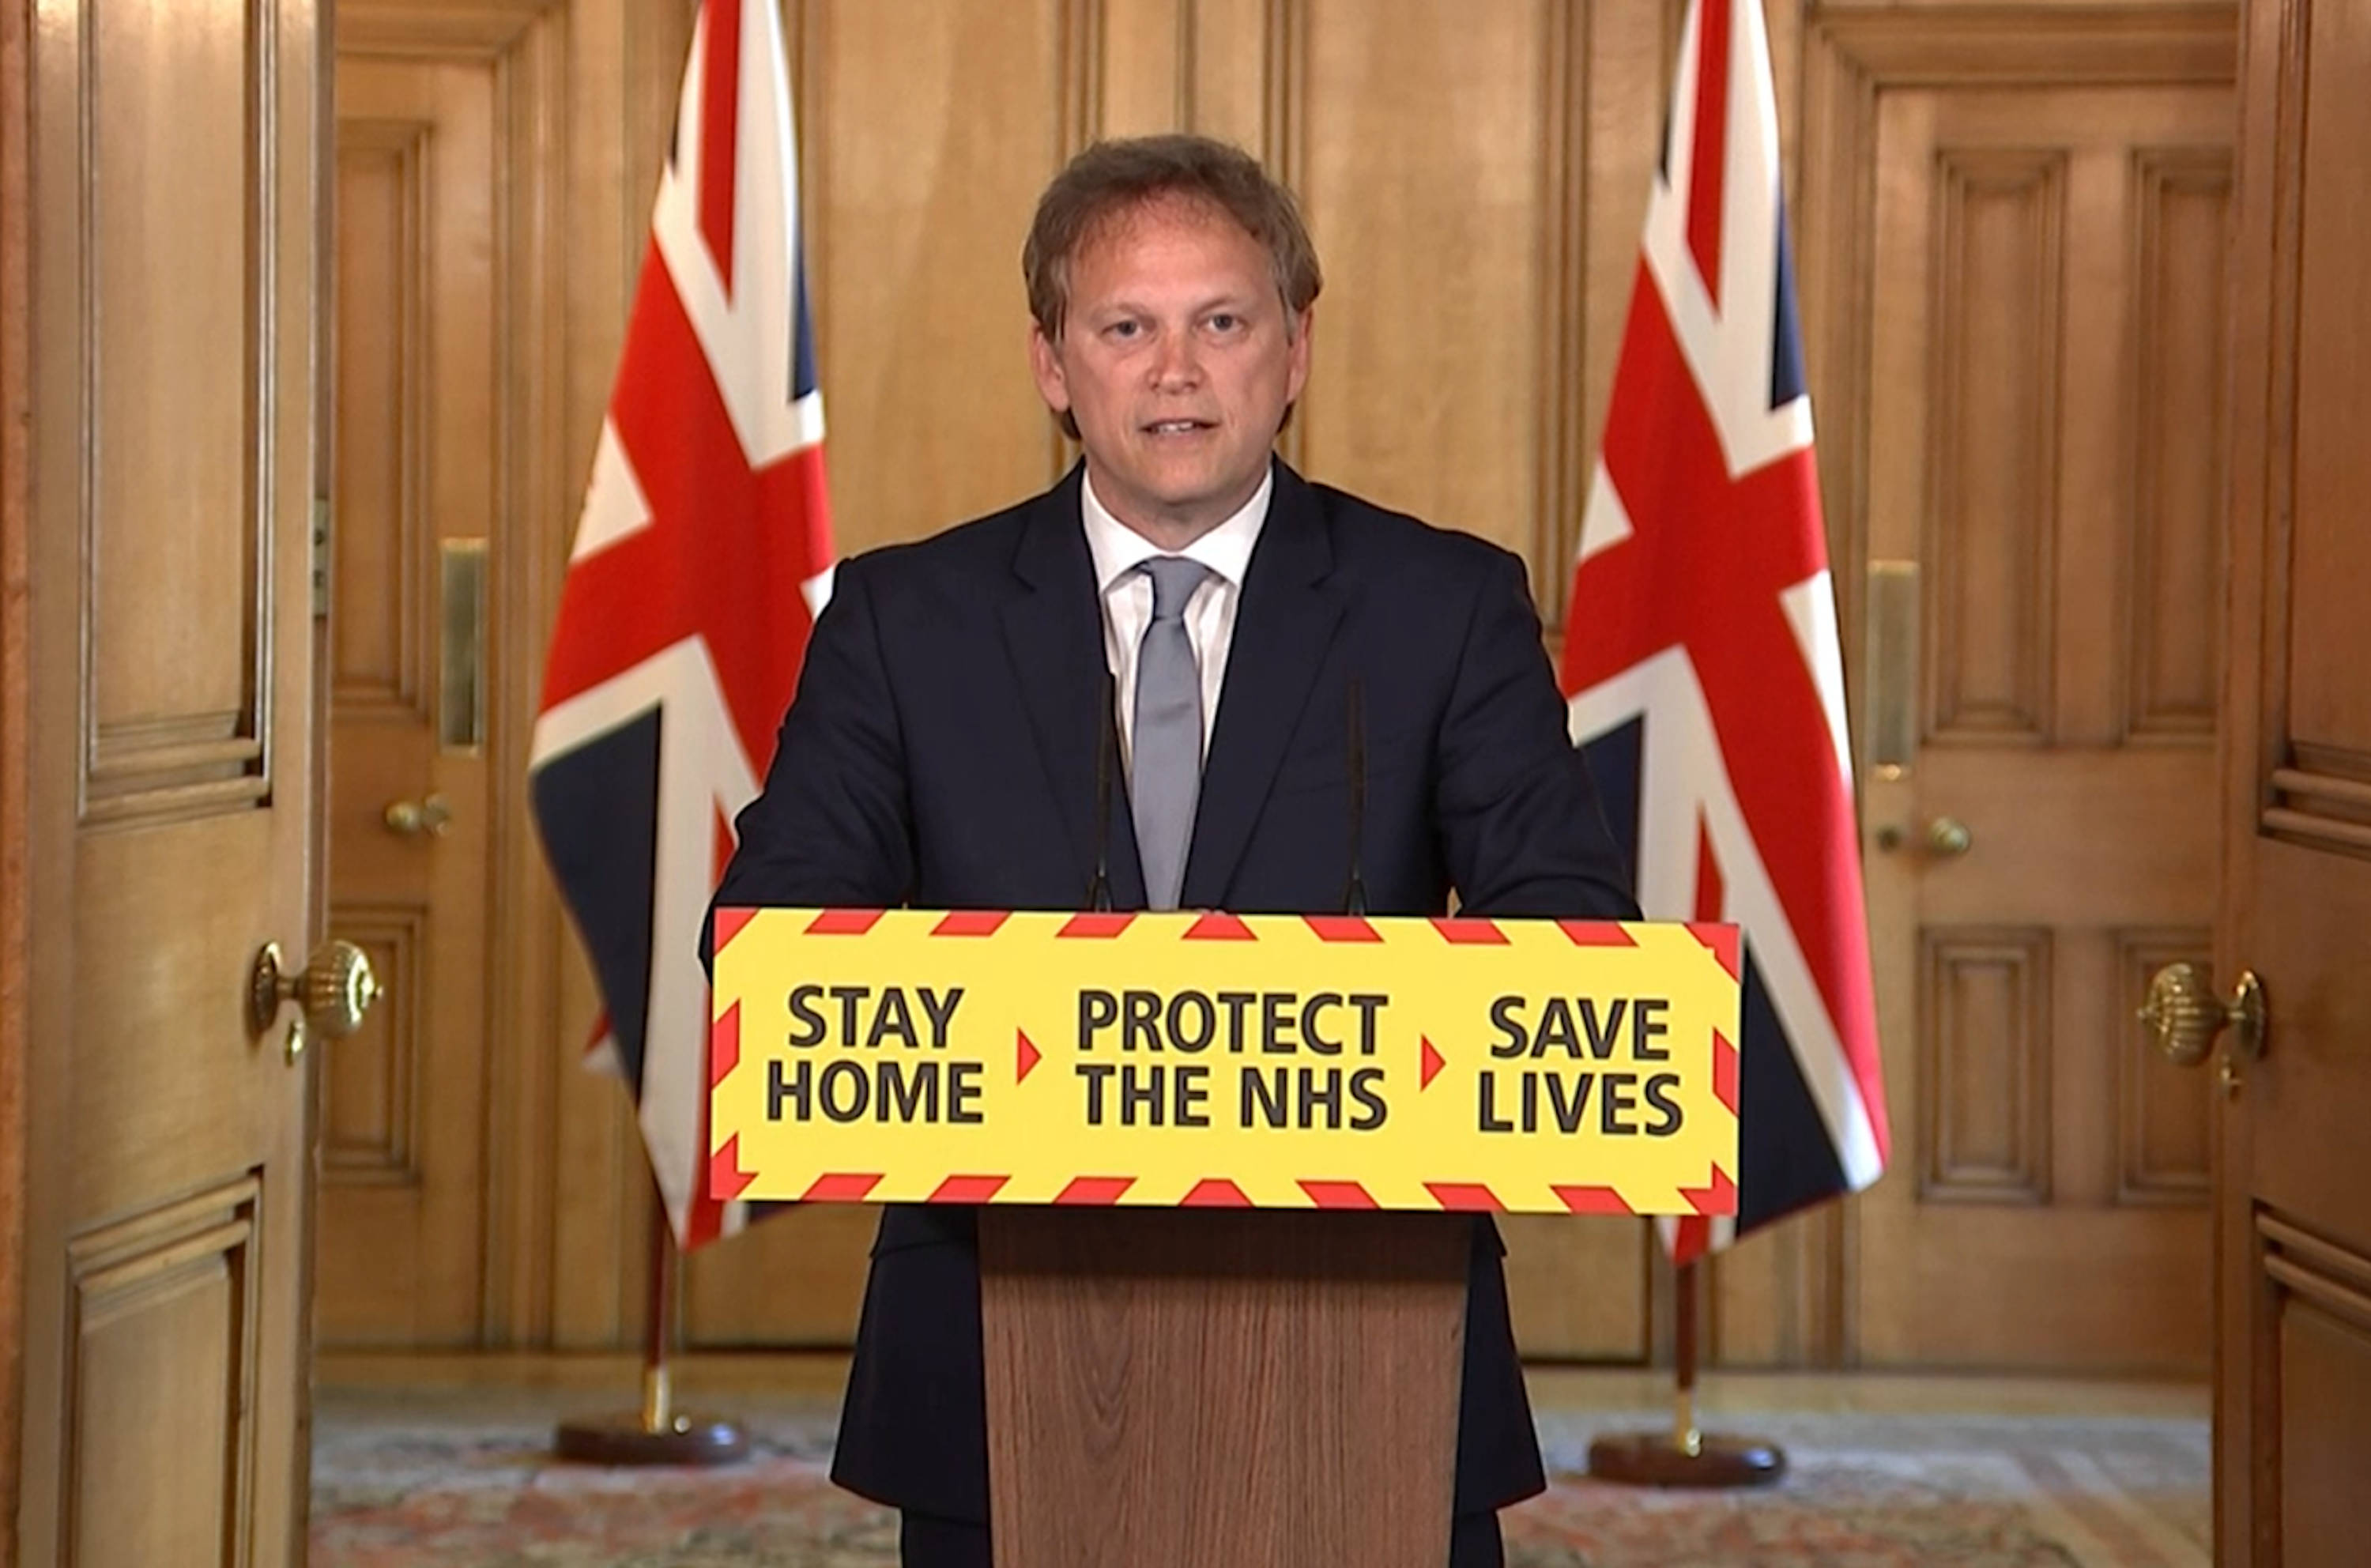 UK Transport Secretary Grant Shapps presents at the No.10 lectern for the daily Downing Street briefing